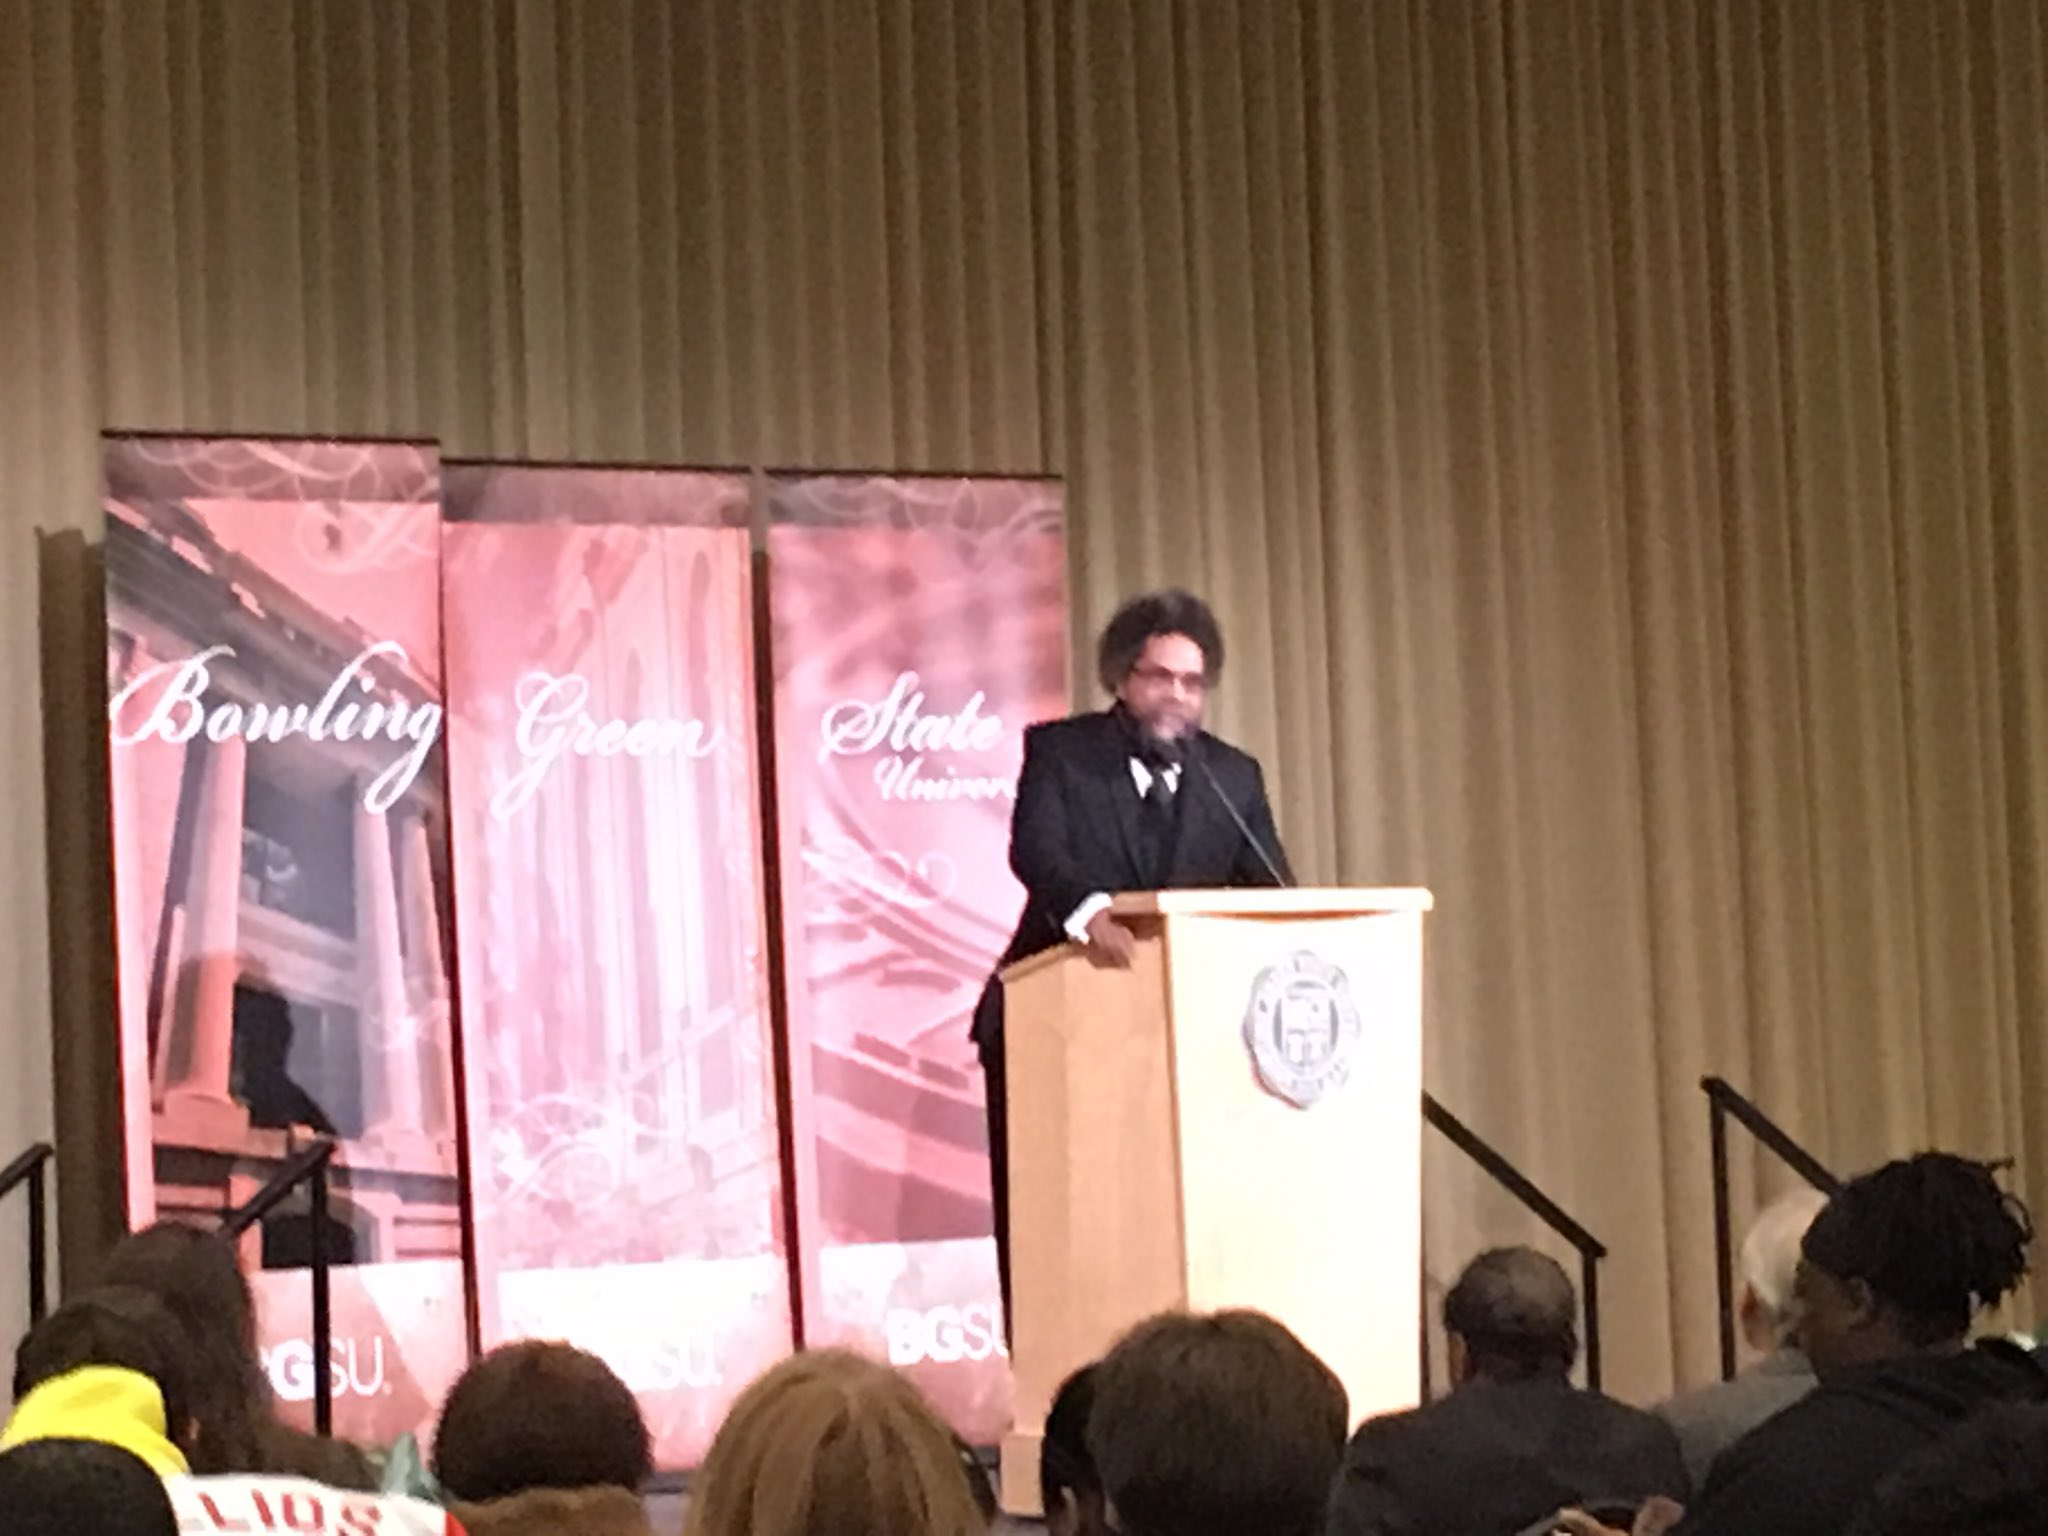 Let the phones be smart, you be wise and courageous: @CornelWest speaking @bgsu https://t.co/VOHUpQzTzH